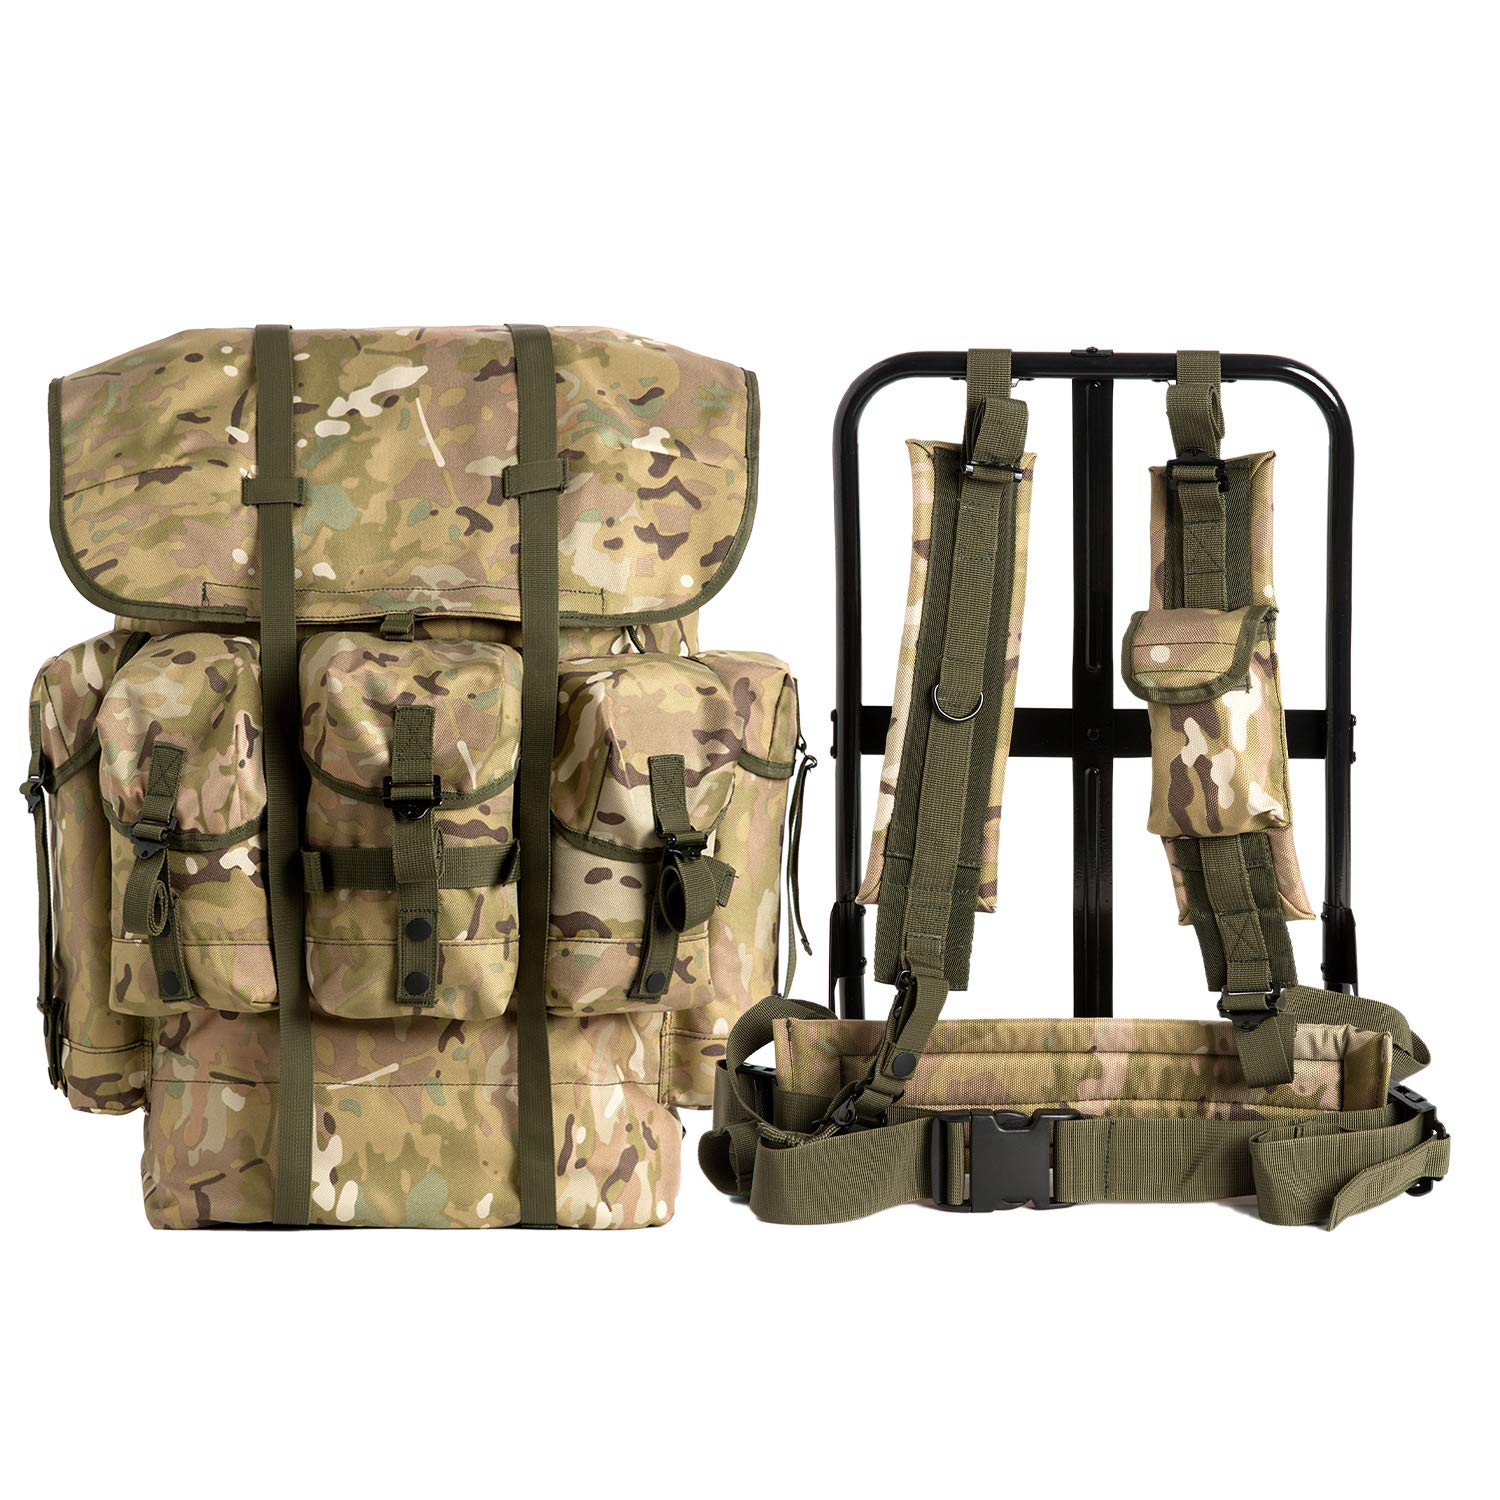 AKmaxUS Military Surplus Rucksack Alice Pack,Army Survival Combat Field A.L.I.C.E. Backpack with Suspender Strap and Frame 1000D Nylon Waterproof Multicam